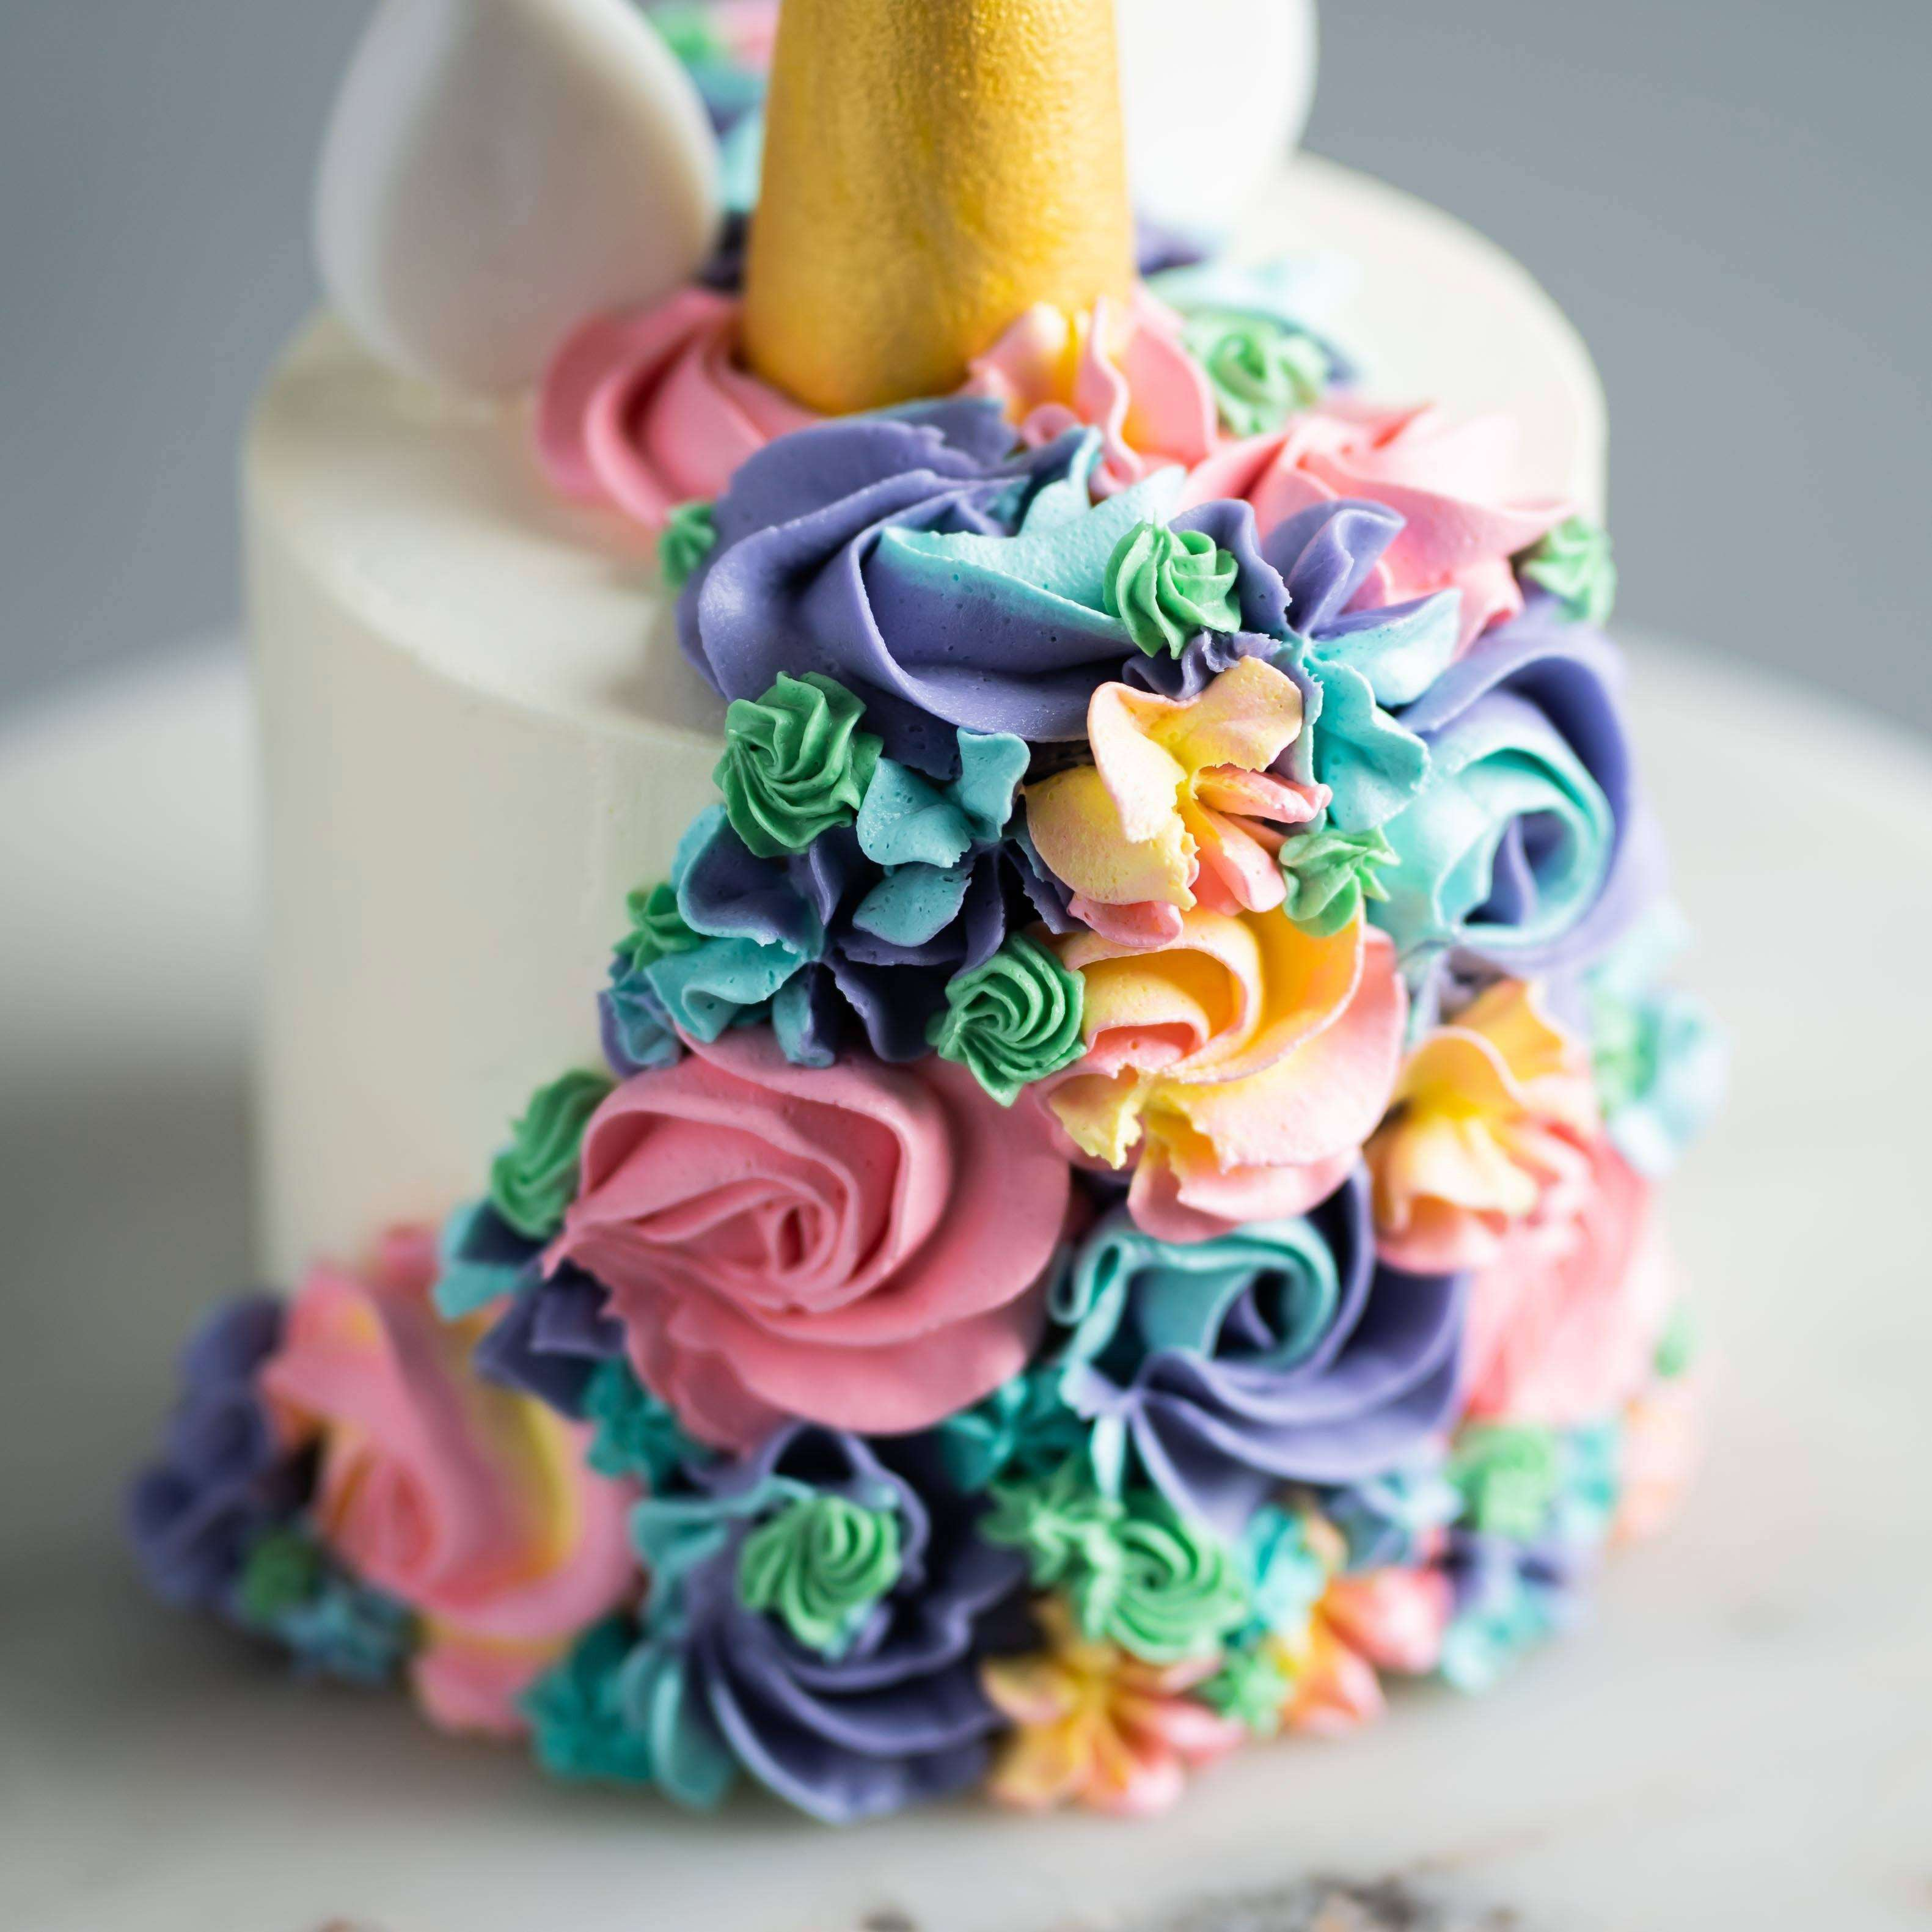 Cakes For Kids And Baby Eat Cake Today Delivery Kl Pj In